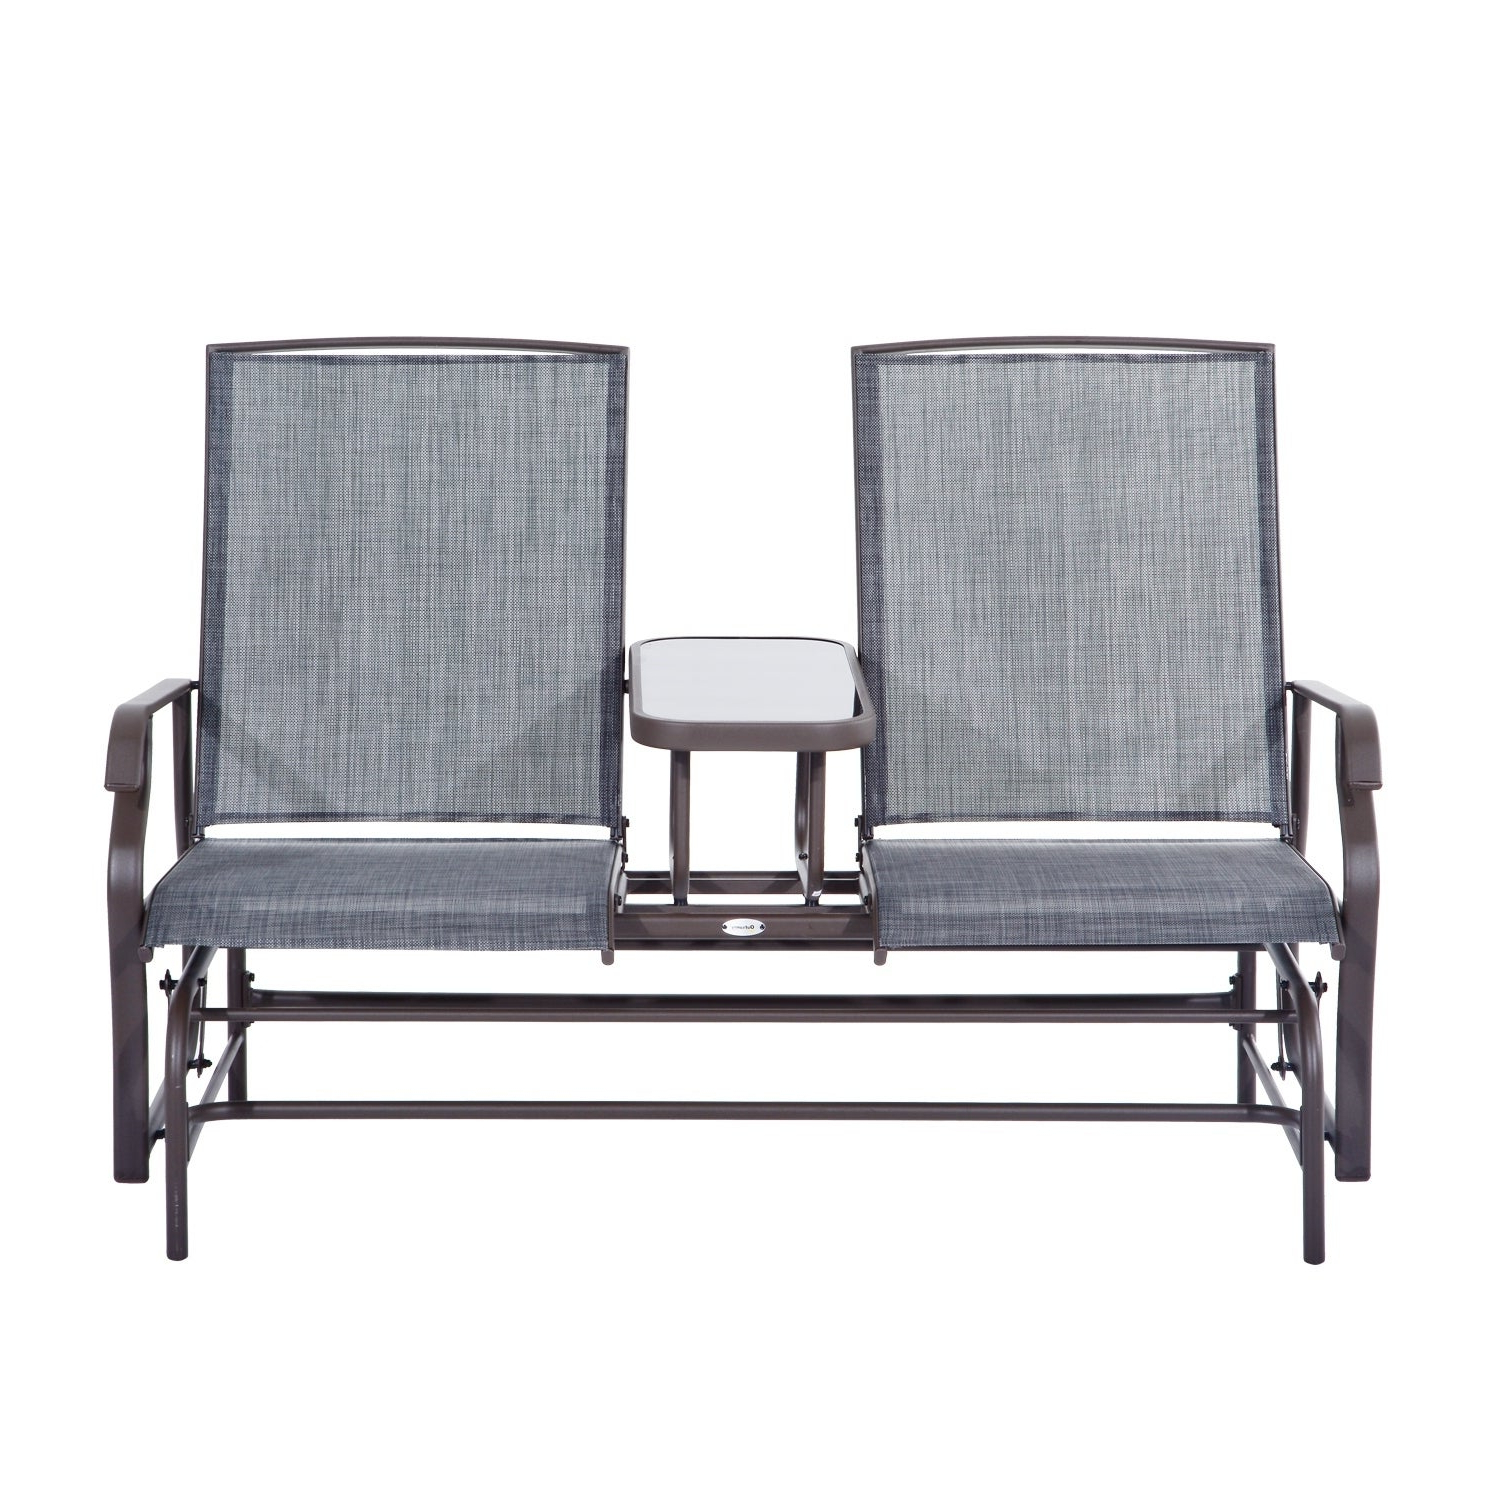 Most Recent Iron Double Patio Glider Benches Pertaining To Outsunny Two Person Outdoor Mesh Fabric Patio Double Glider Chair With  Center Table (Gallery 13 of 30)